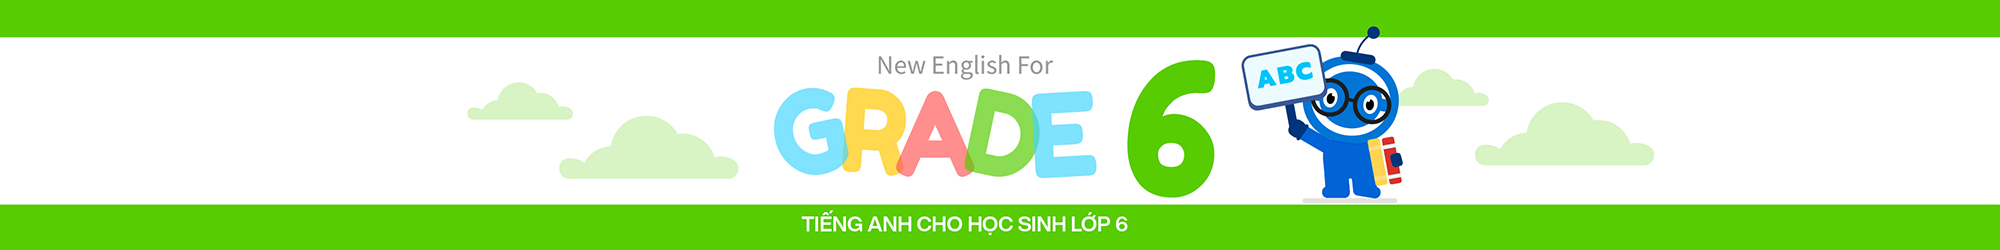 NEW ENGLISH FOR GRADE 6